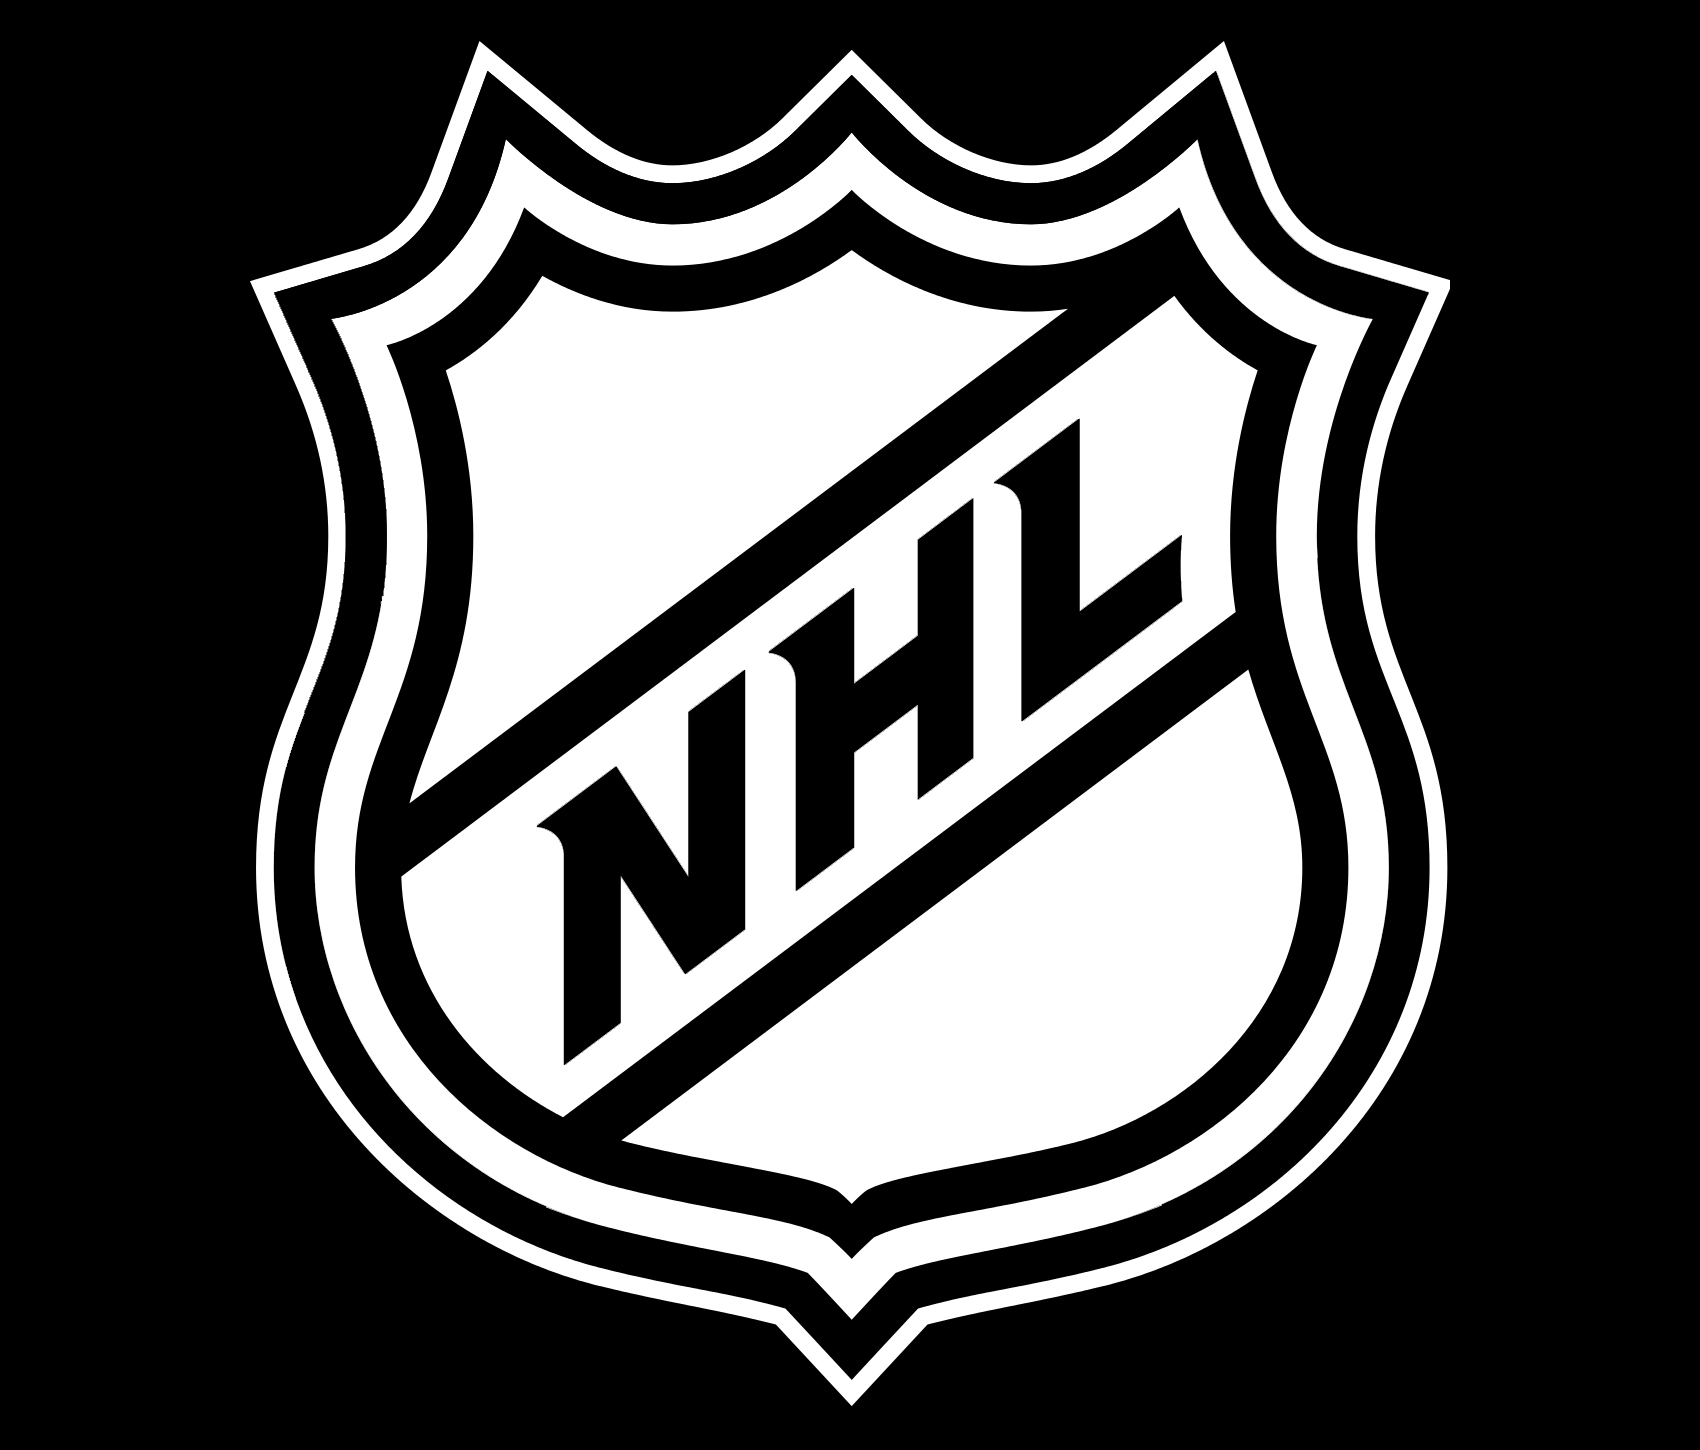 NHL Hockey - NHL Center Ice is an out-of-market sports package distributed by most cable and satellite providers in the United States and Canada. The package allows its subscribers to see up to forty out-of-market National Hockey League games a week using local and national television networks